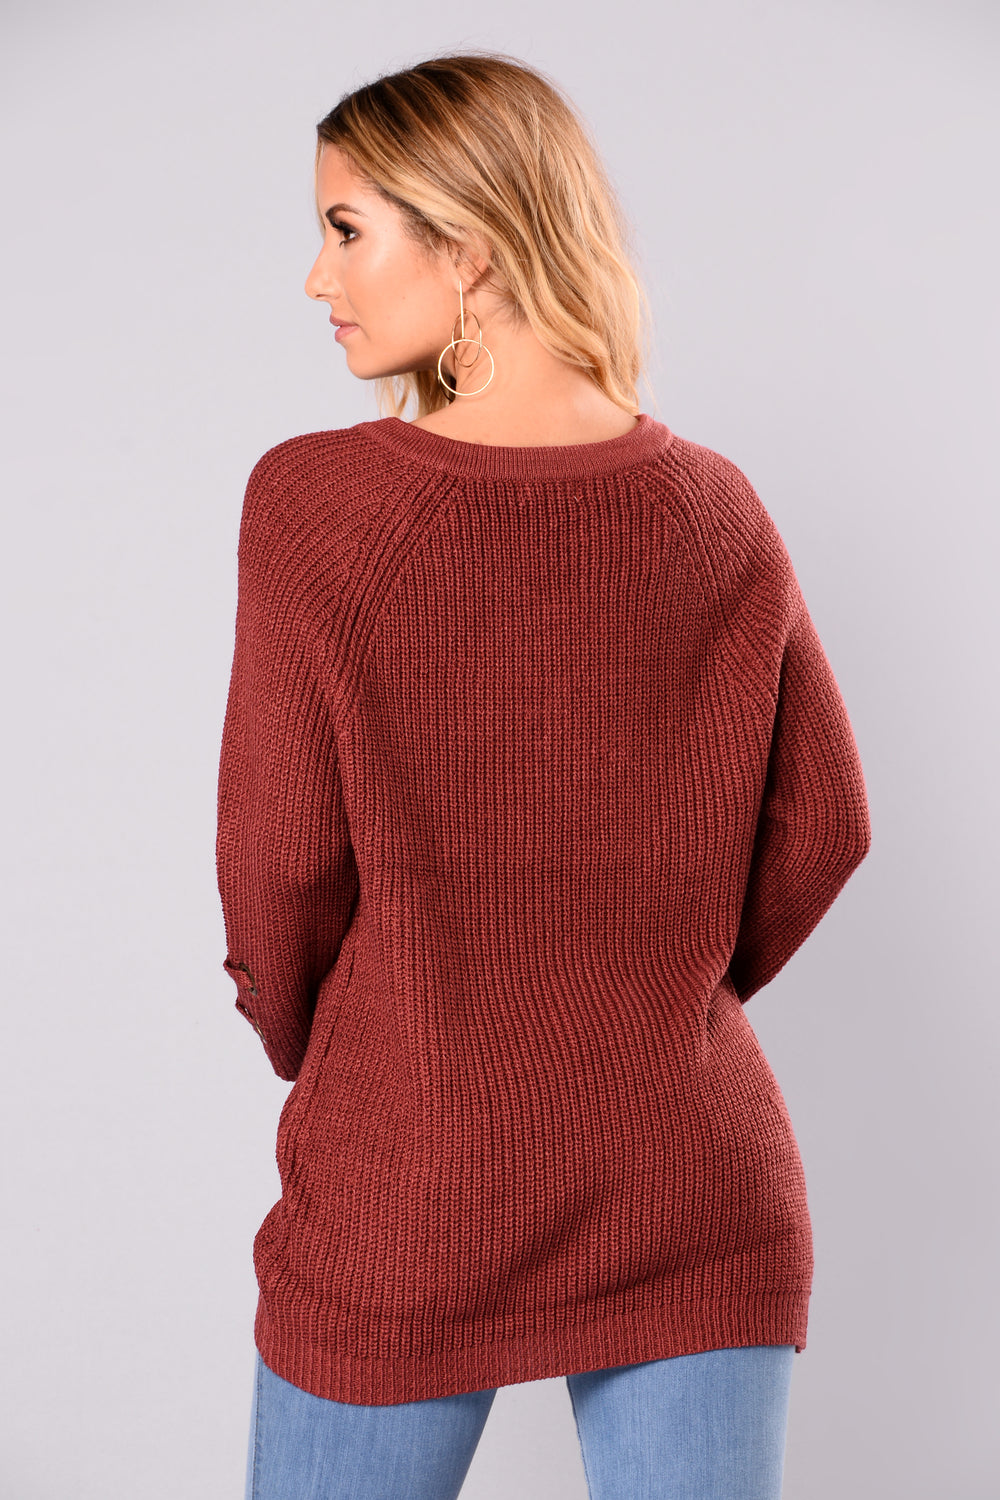 Lake Boat Sweater - Berry